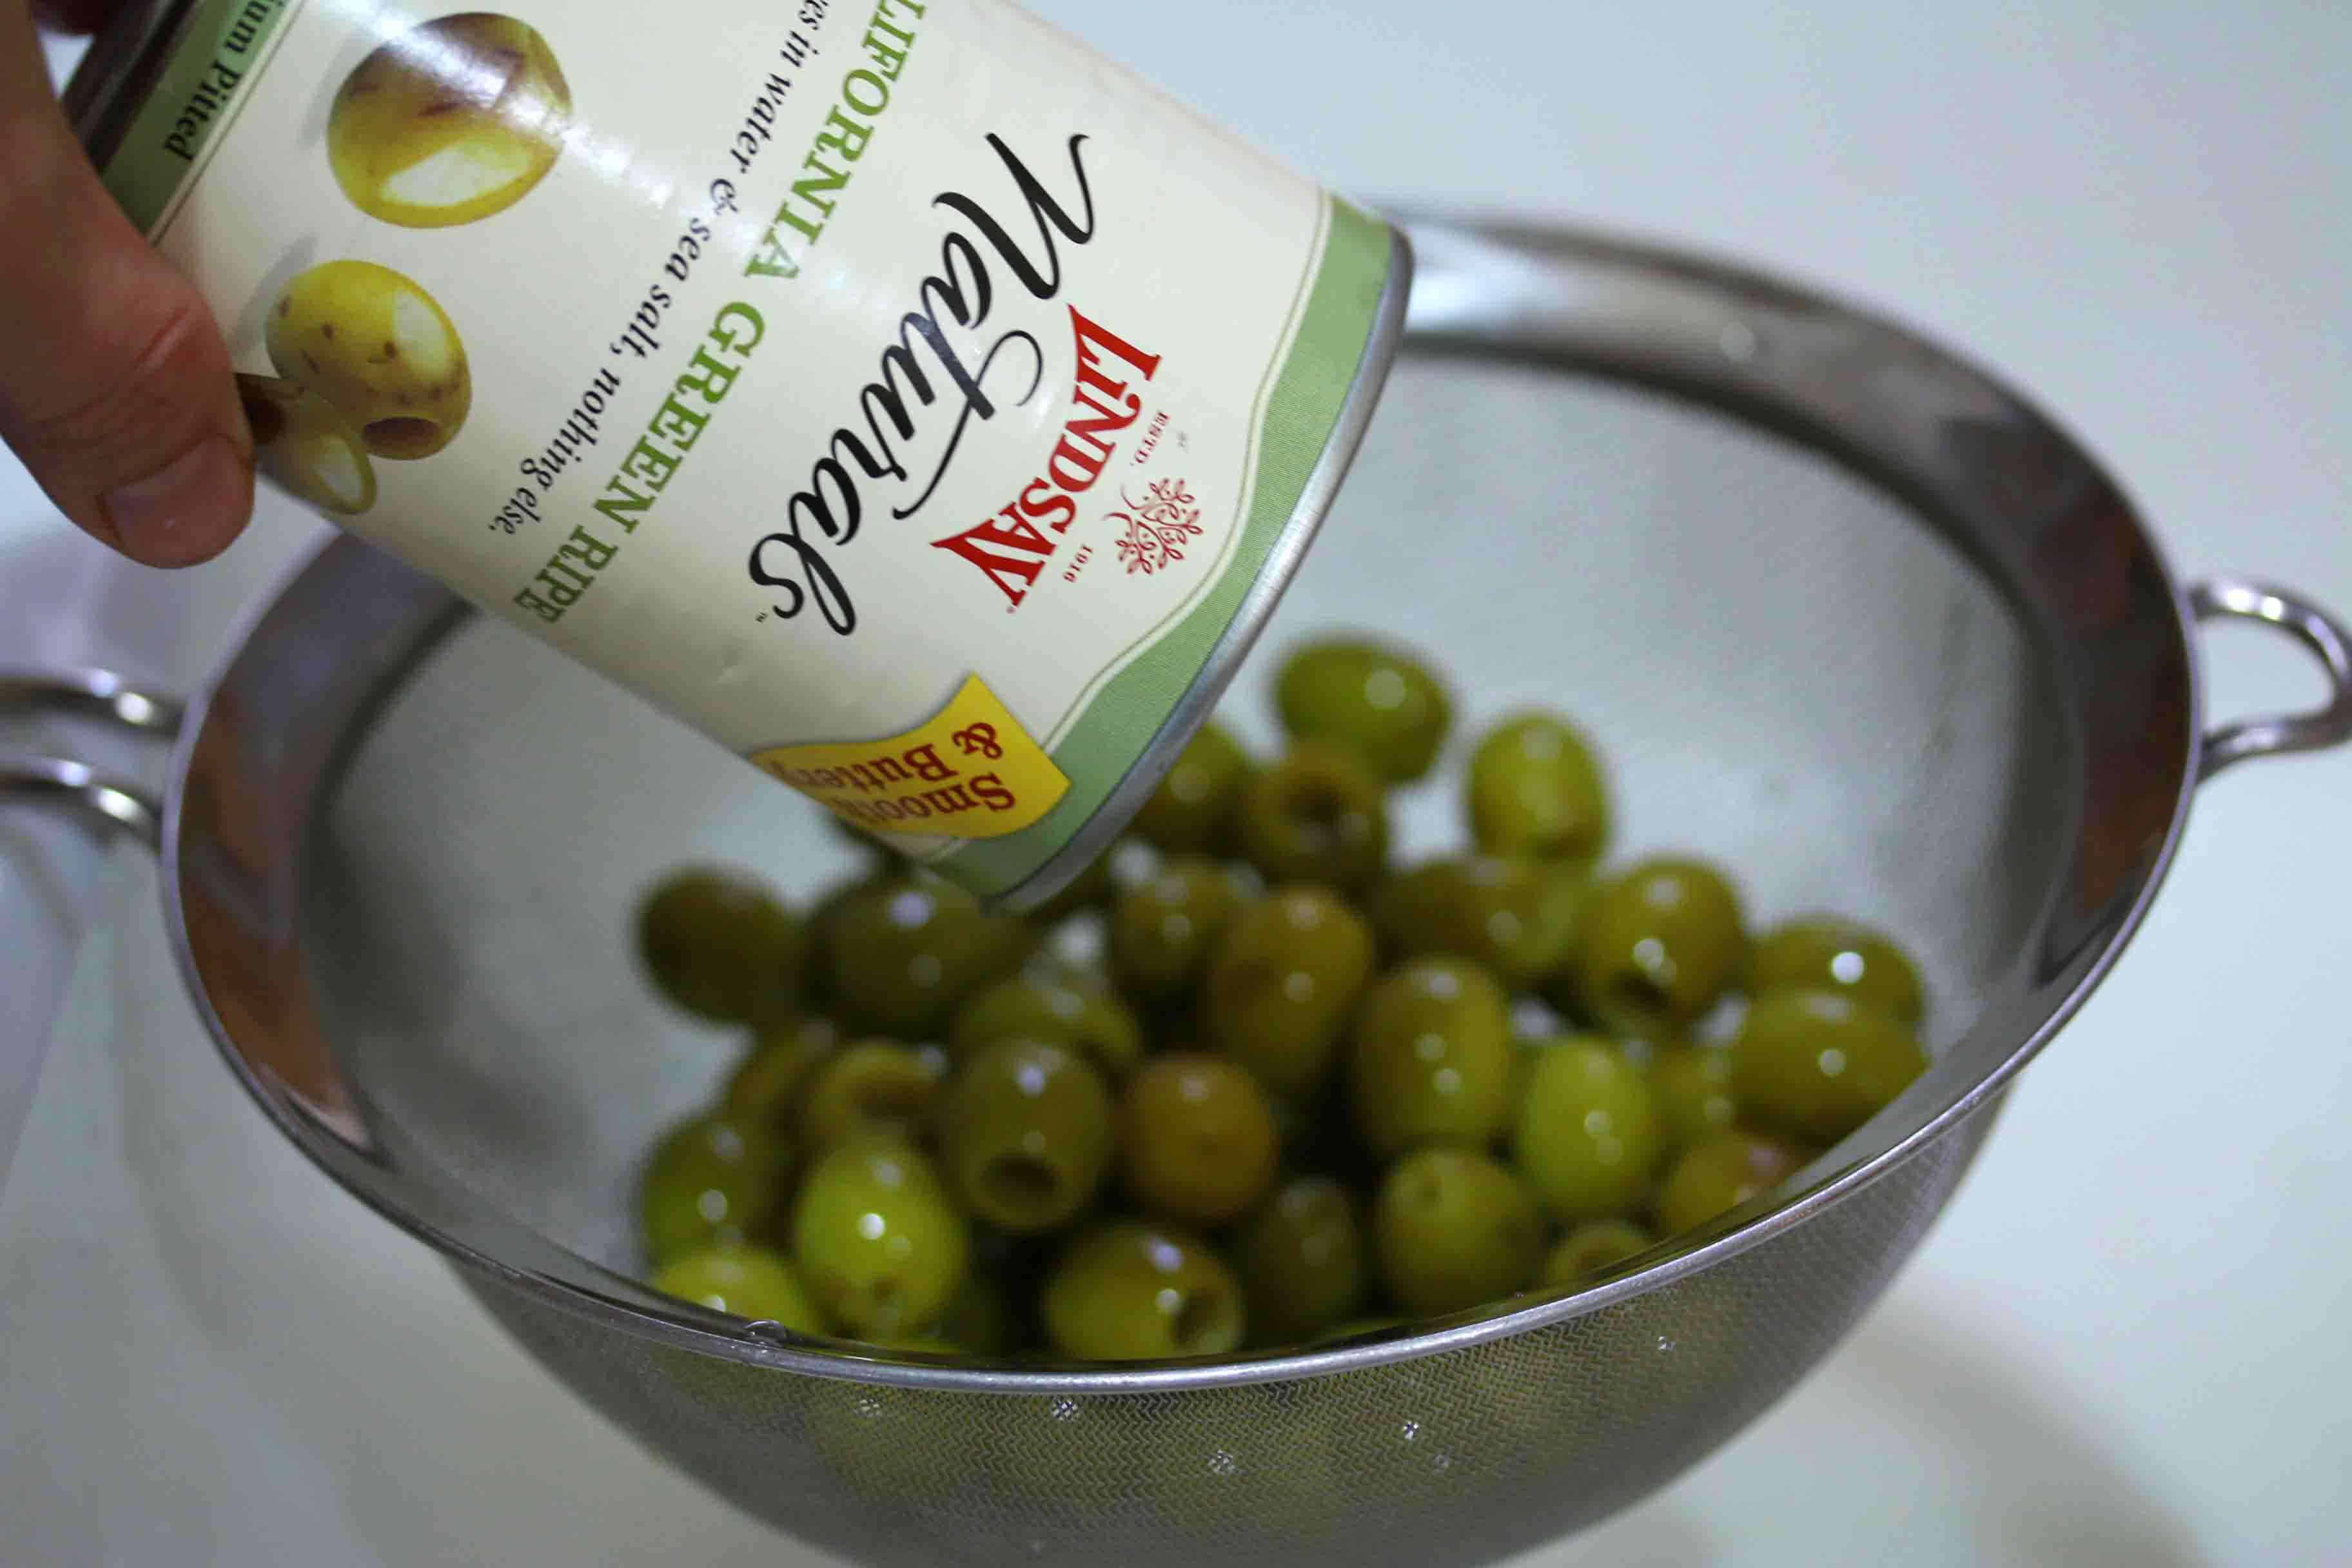 pouring olives from can